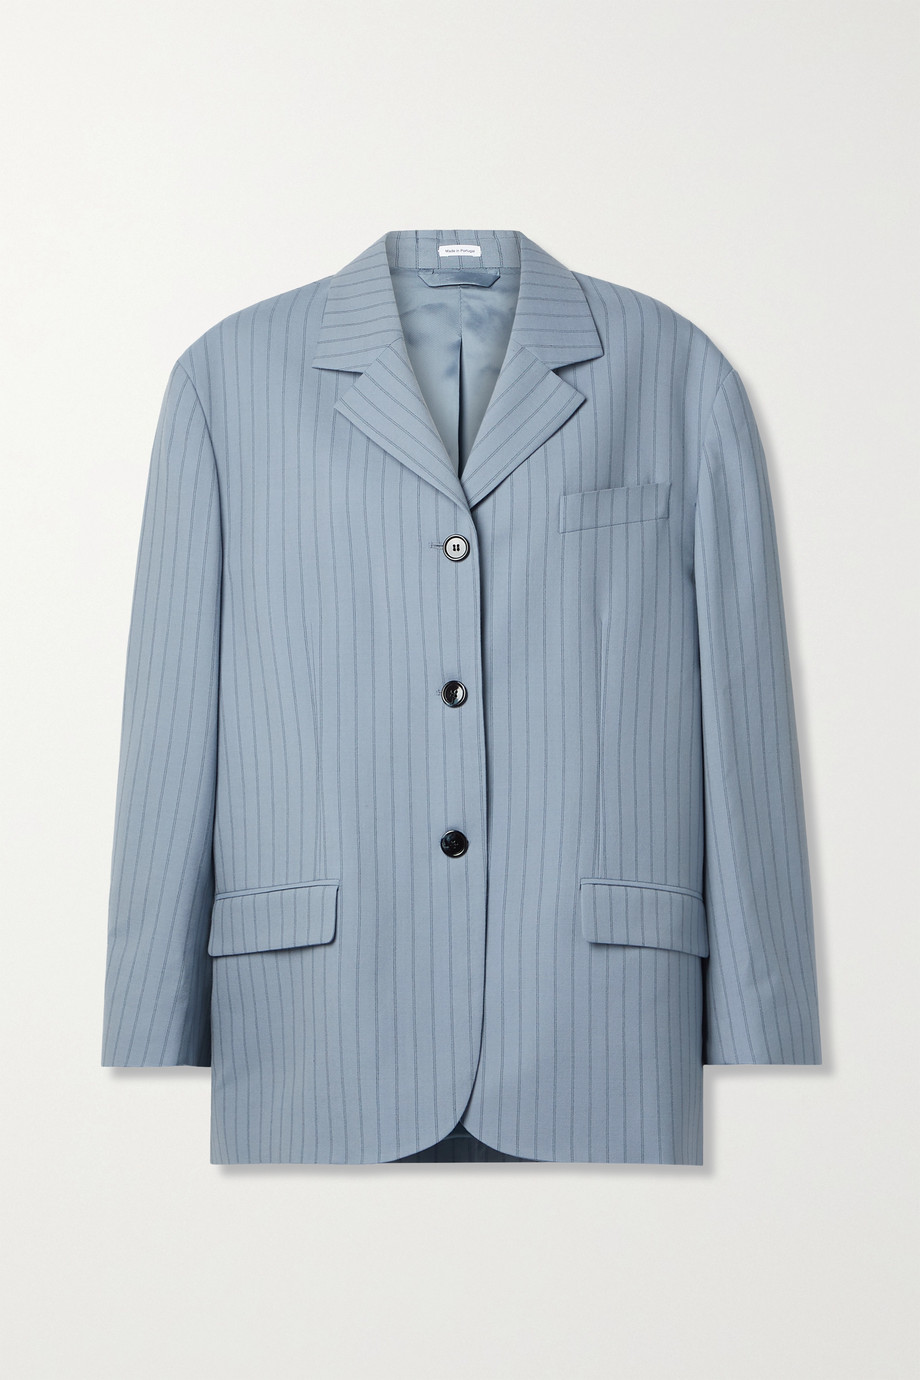 Acne Studios Oversized pinstriped wool blazer